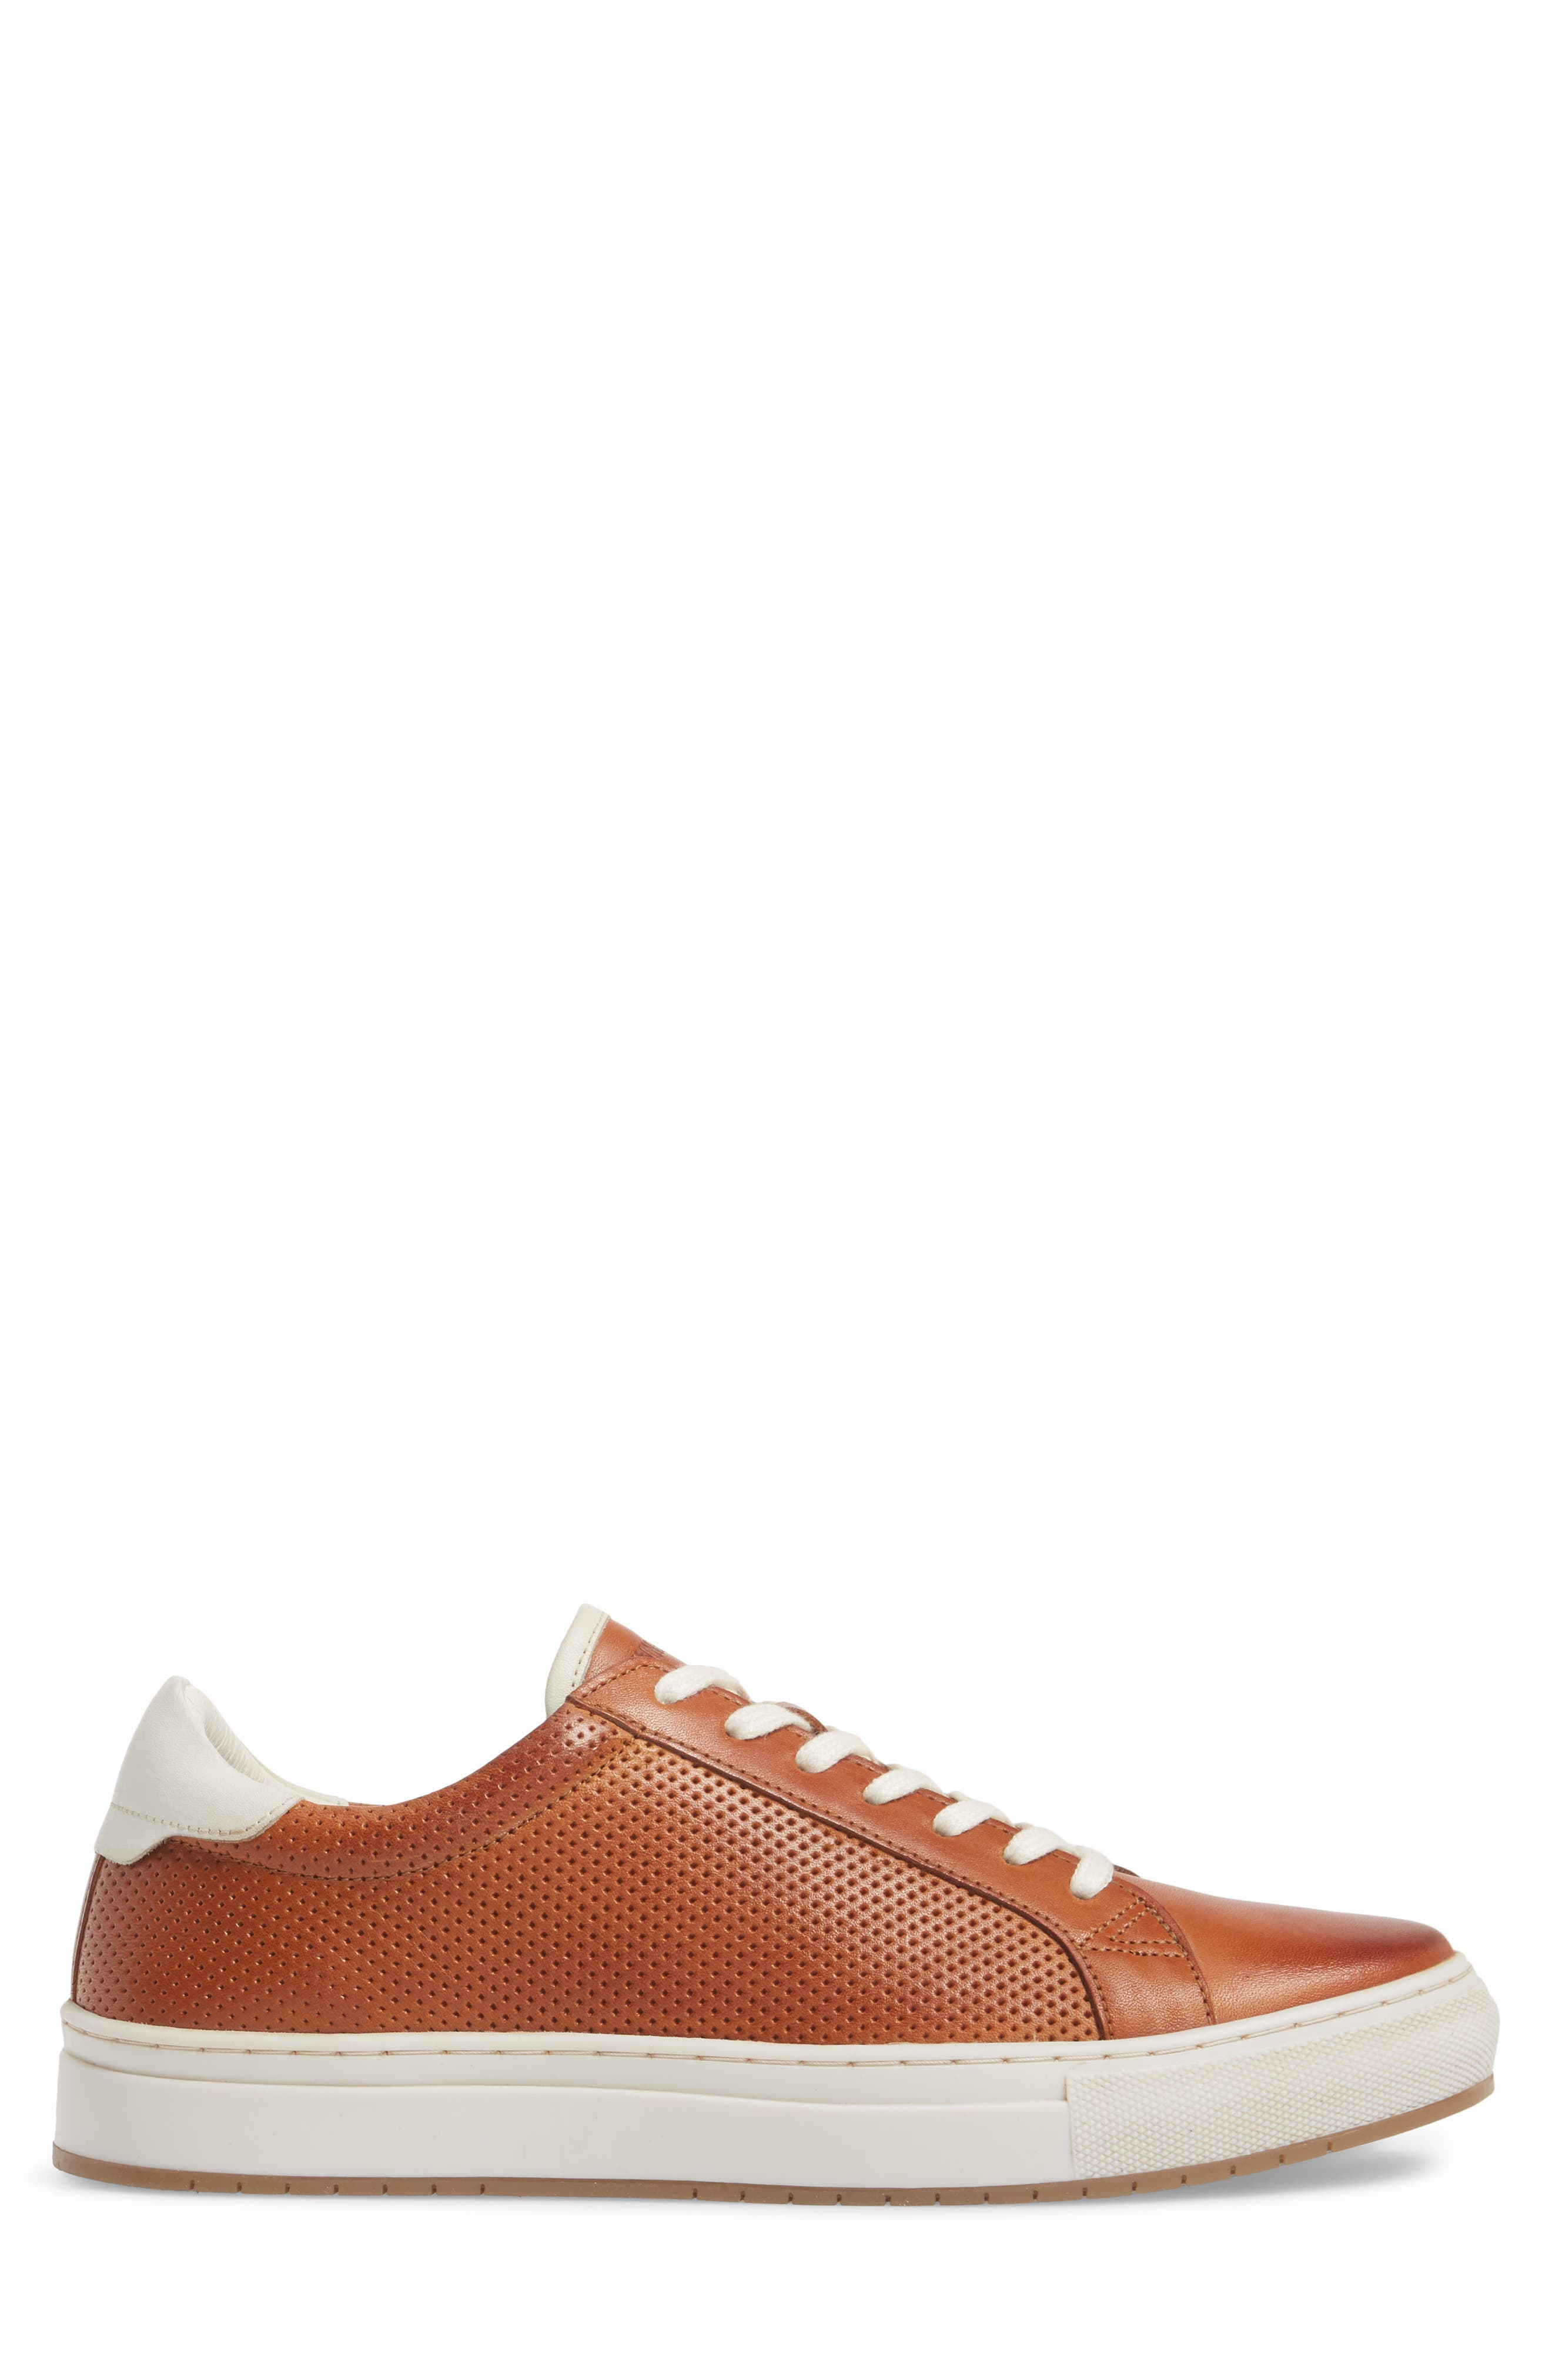 Don Embossed Lace-Up Sneaker,                             Alternate thumbnail 3, color,                             Cognac Leather